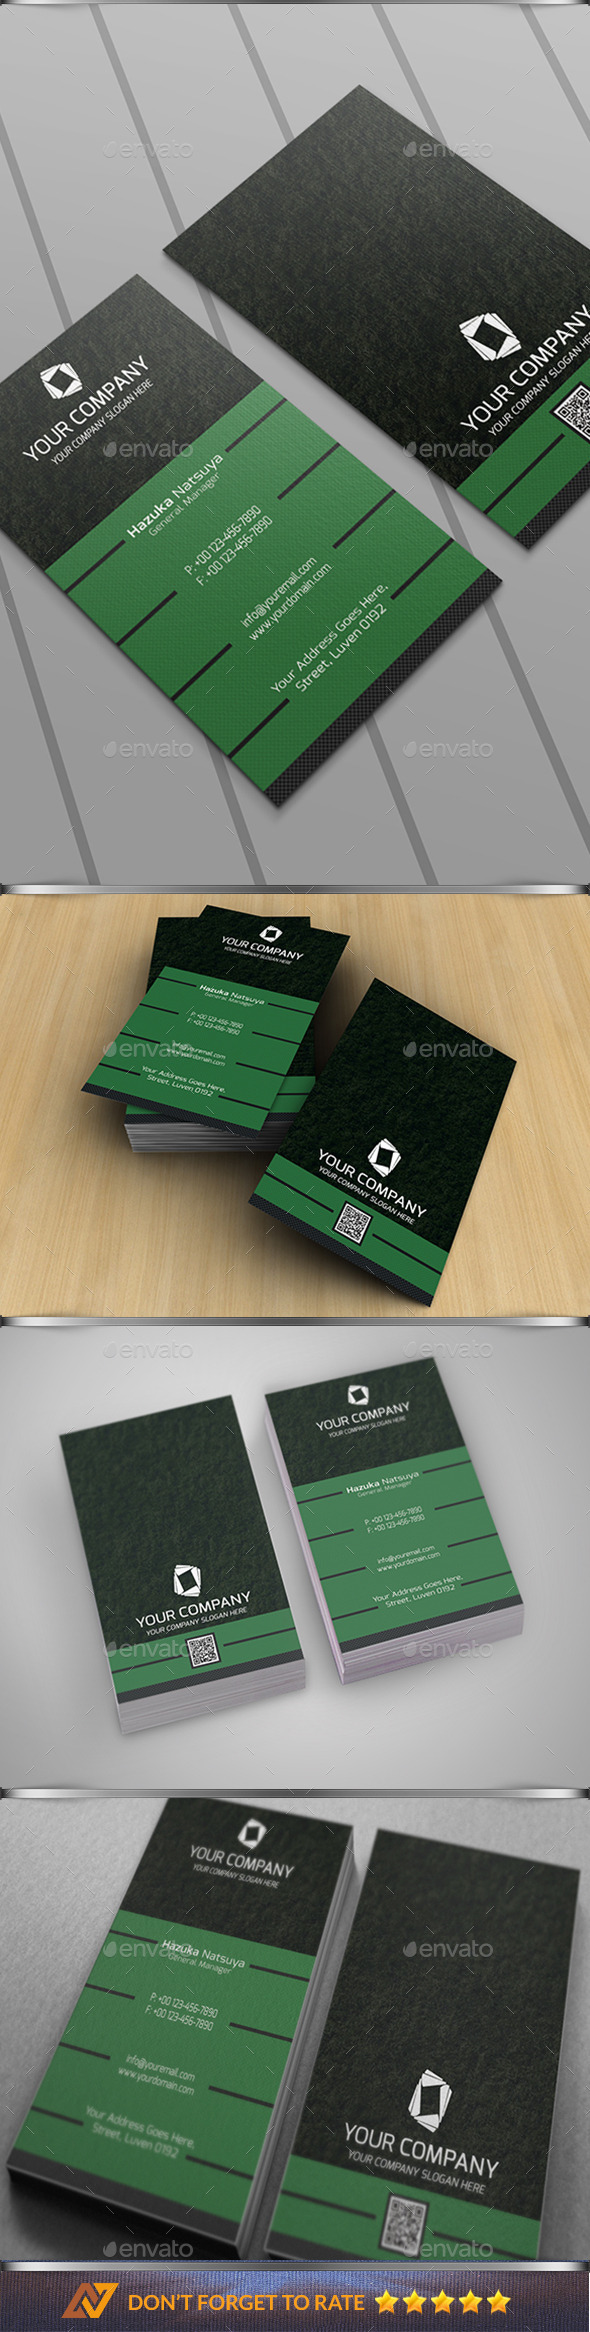 GraphicRiver Modern Corporate Business Card Vol 2 11978796